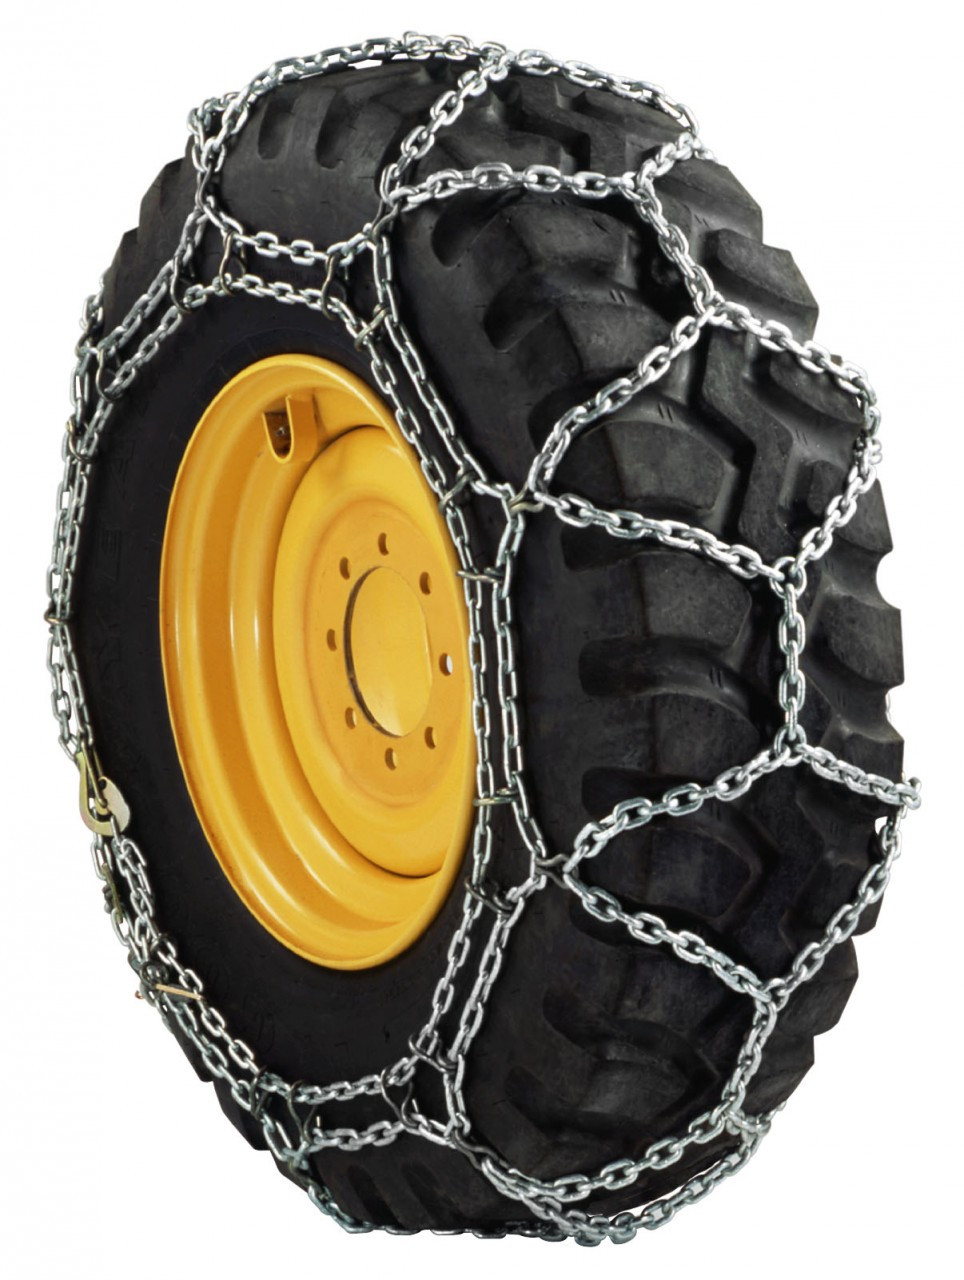 RUD Cargo Chains (Oversized) - Budget Option for Oversized